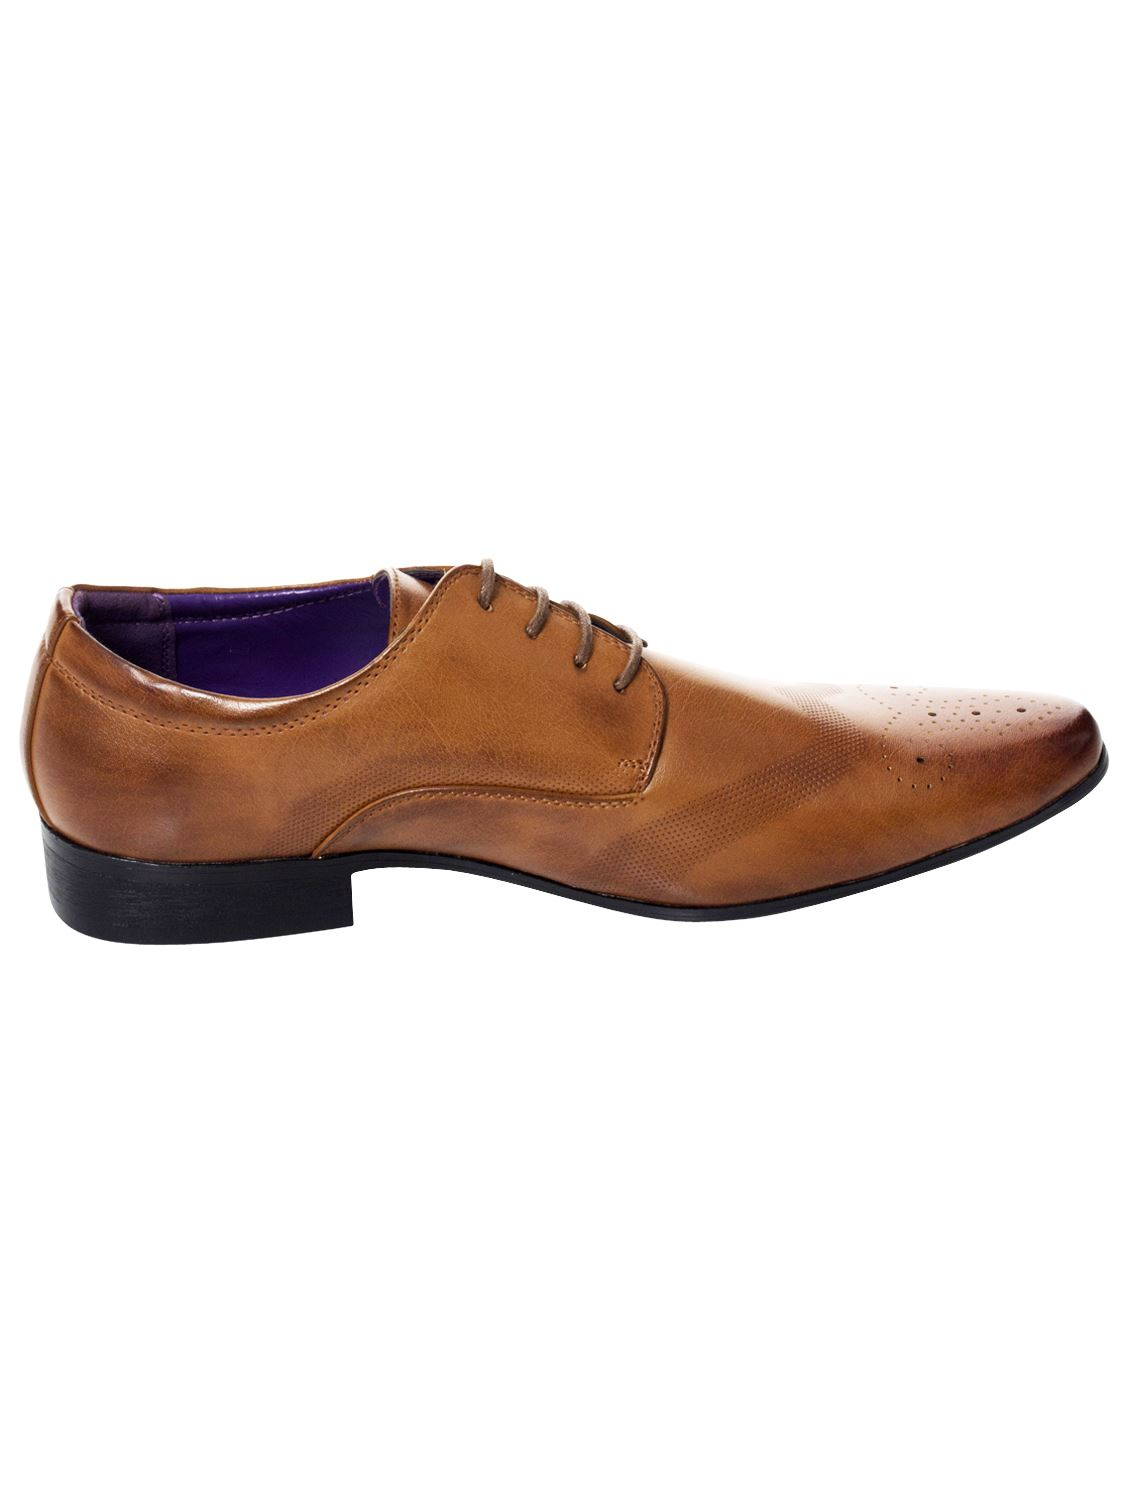 Mens-Faux-Leather-Shoes-Smart-Formal-Wedding-Office-Lace-Up-Designer-Brogues thumbnail 7